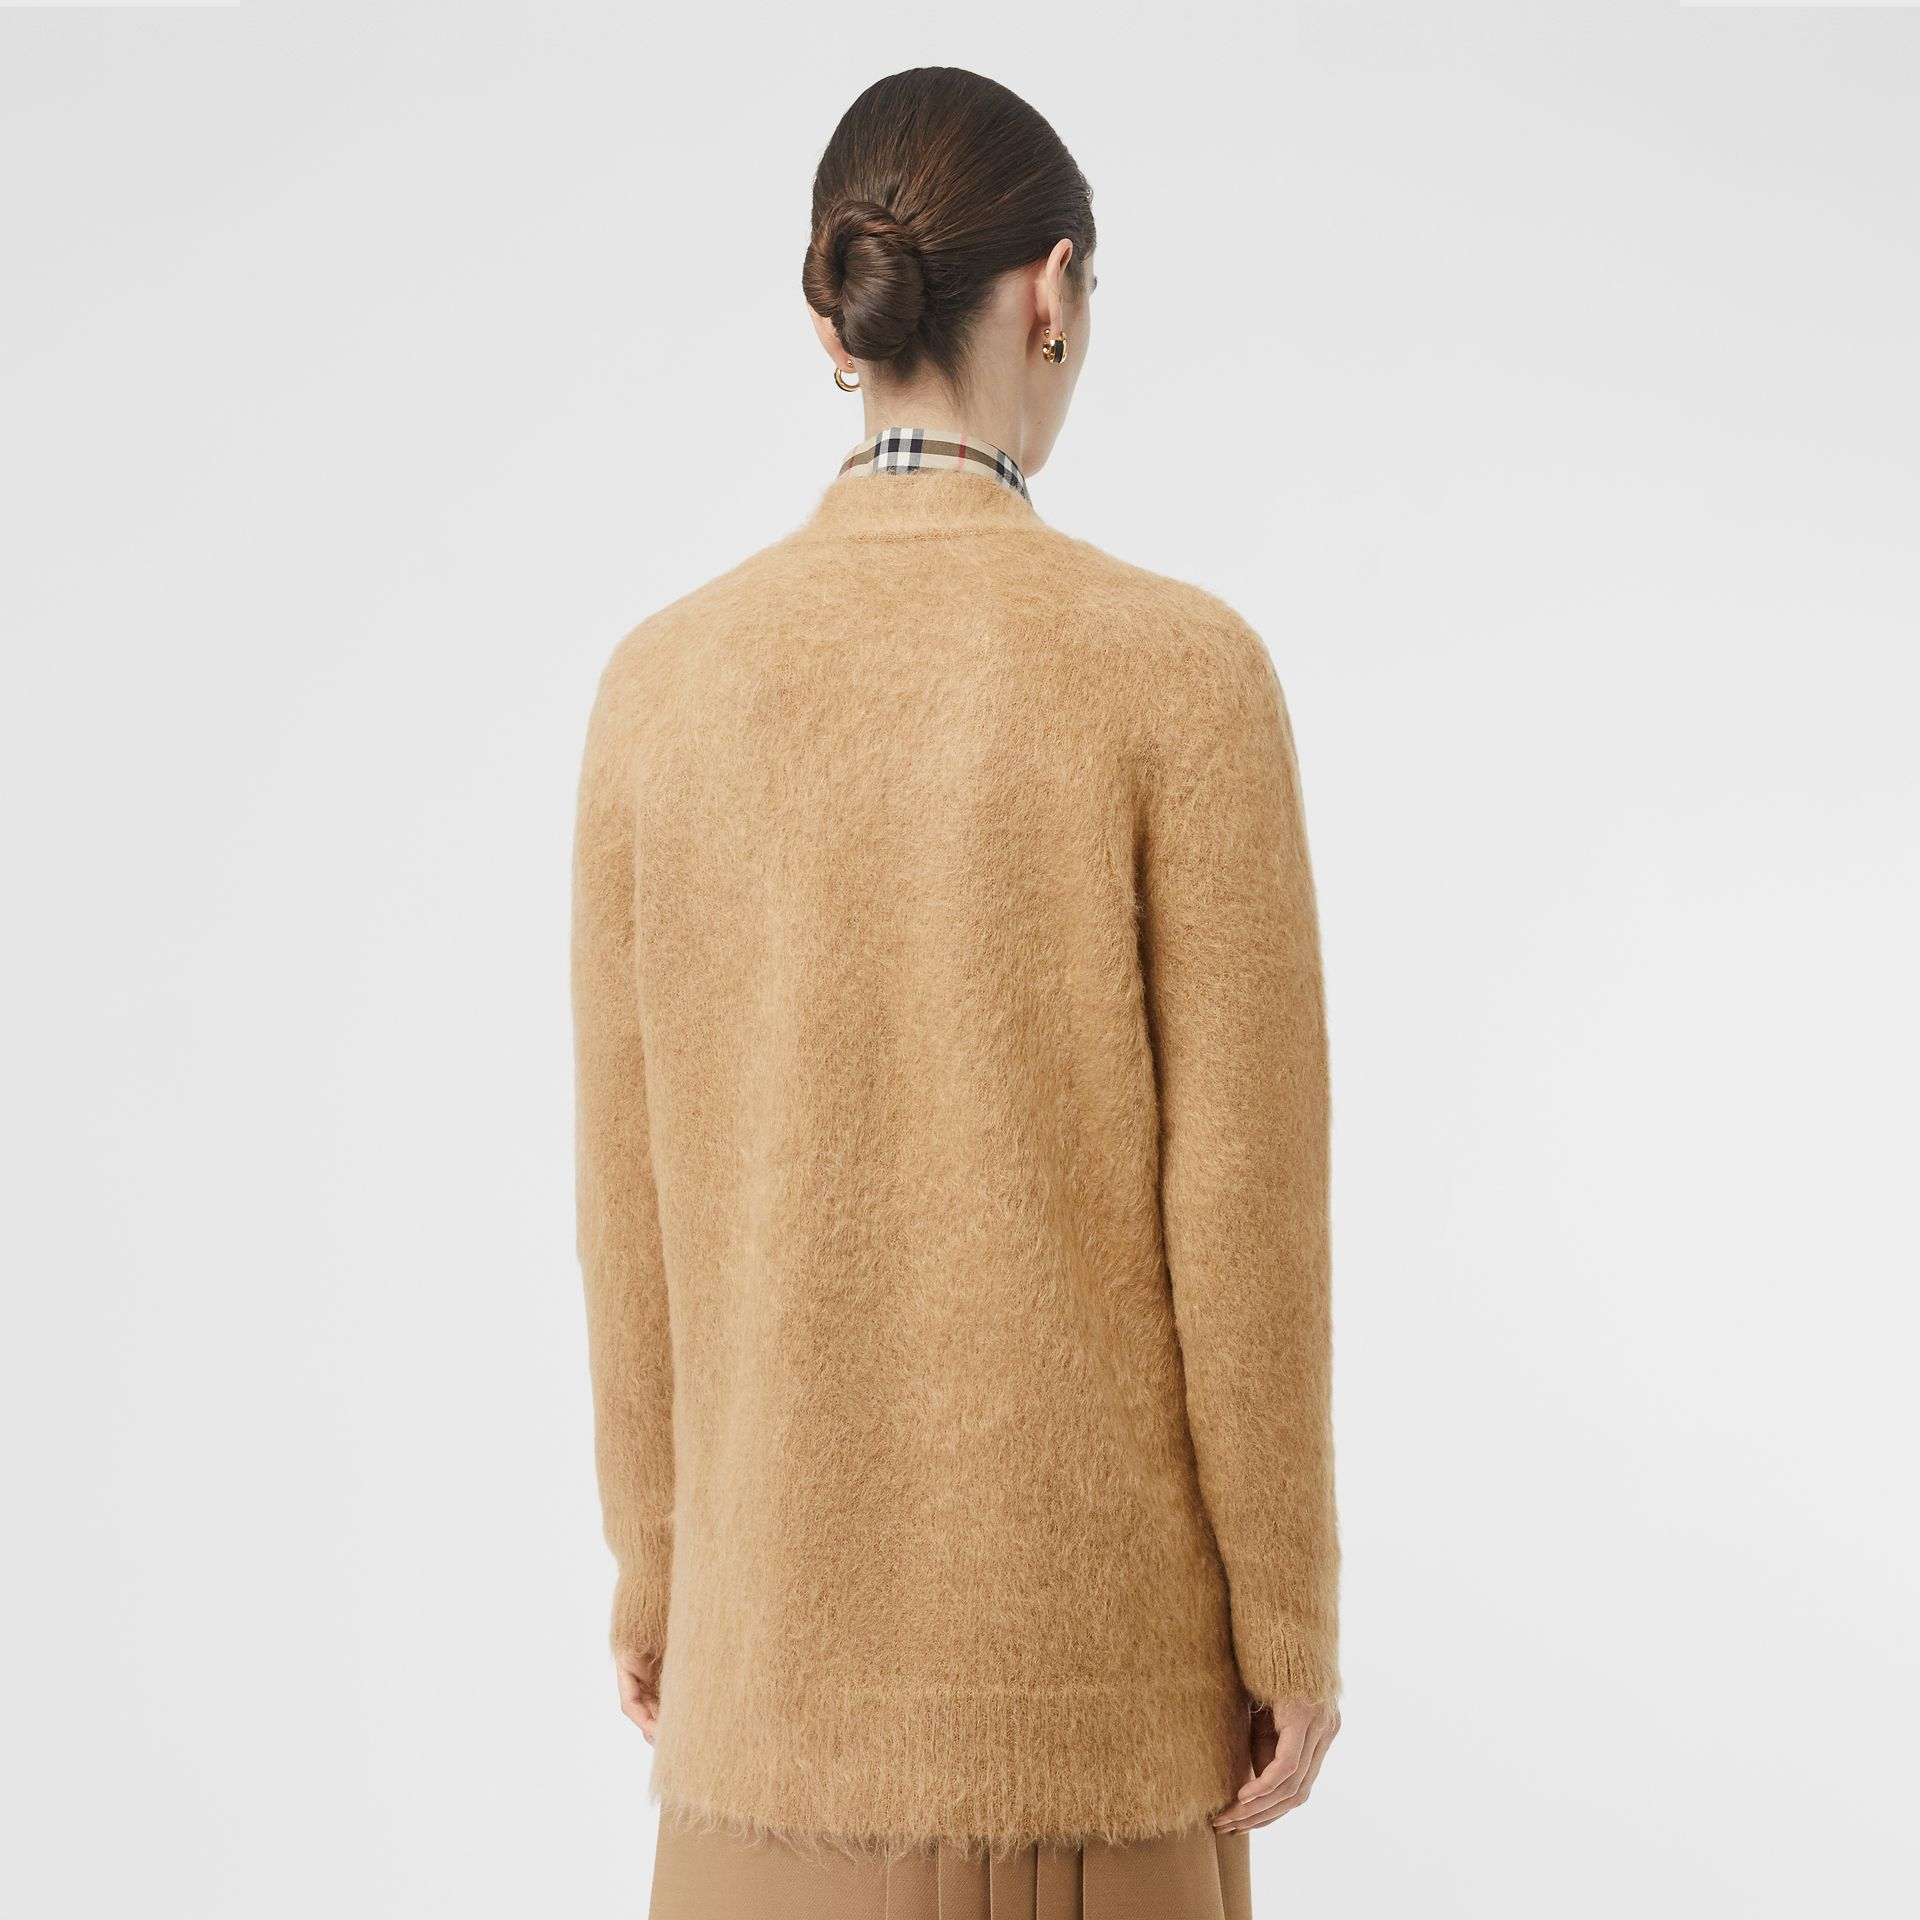 Silk Mohair Wool Blend V-neck Cardigan in Light Camel - Women | Burberry - gallery image 2